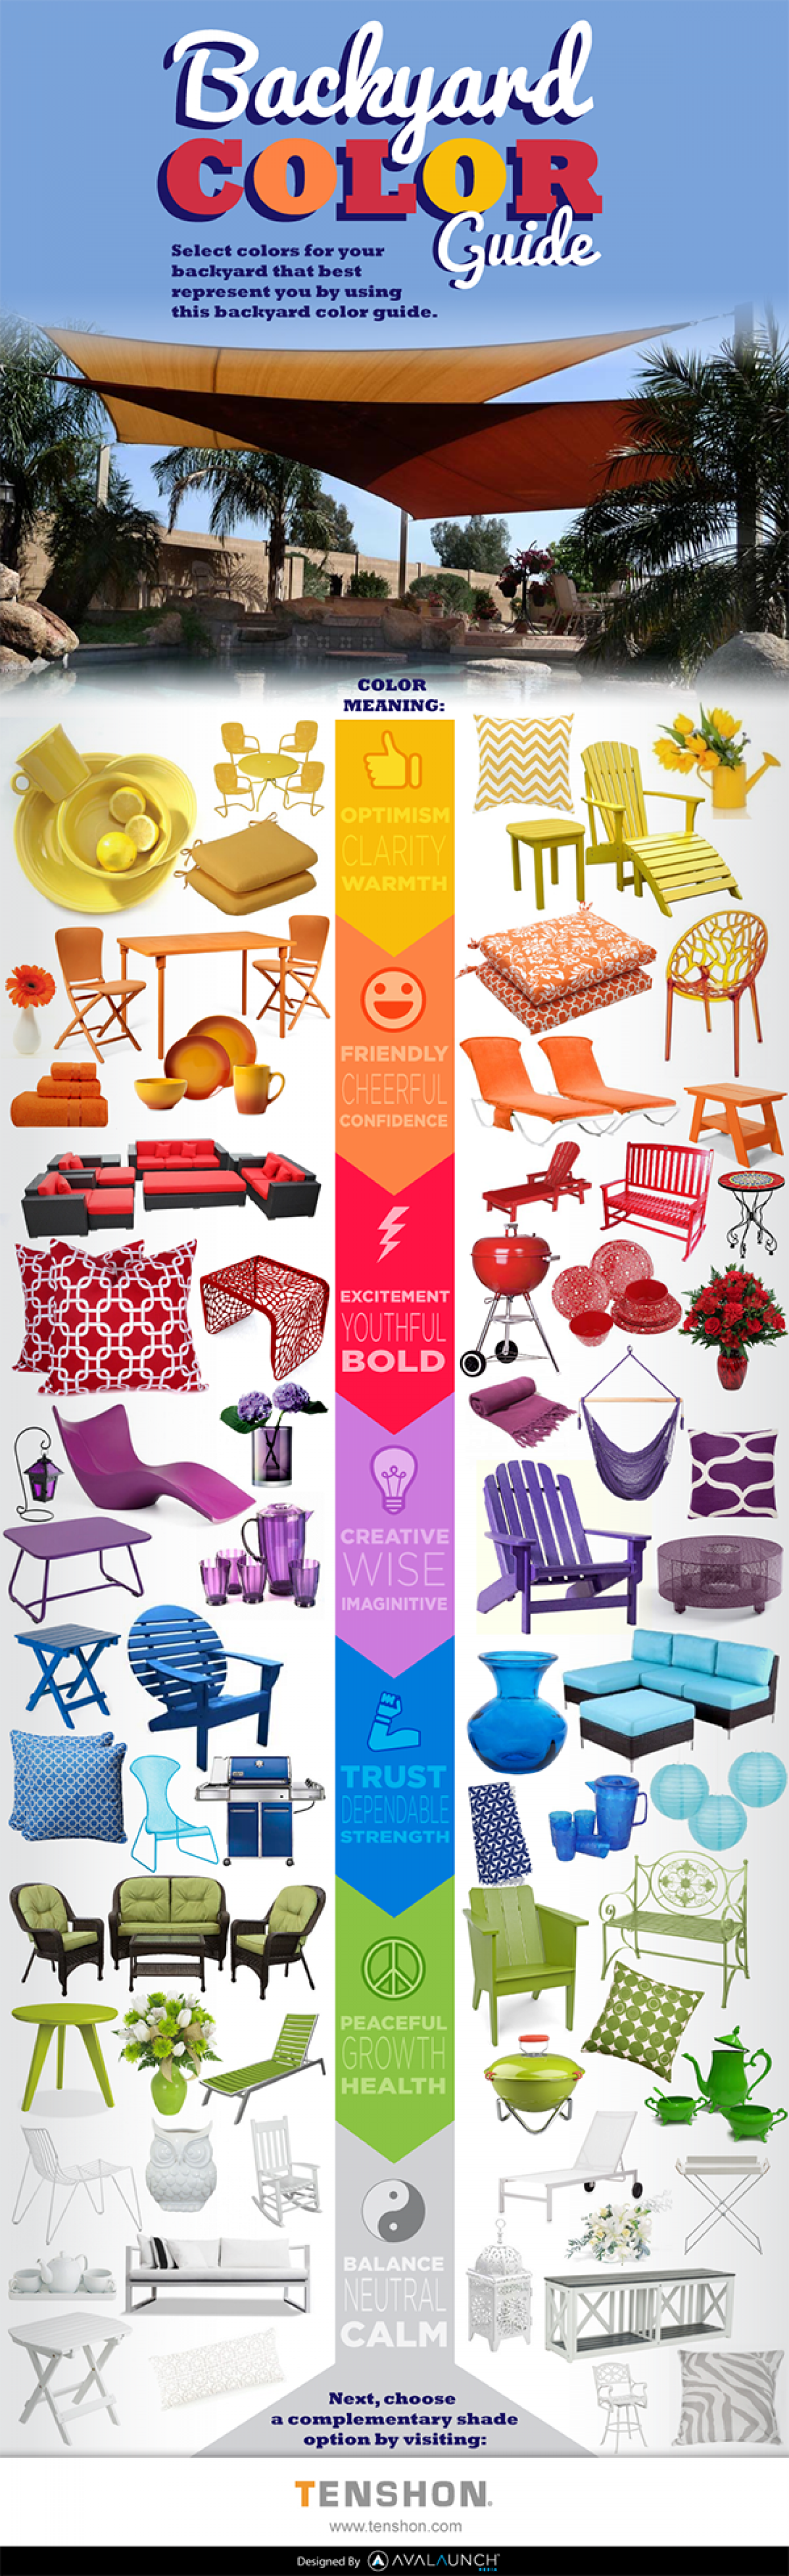 Backyard Color Guide Infographic